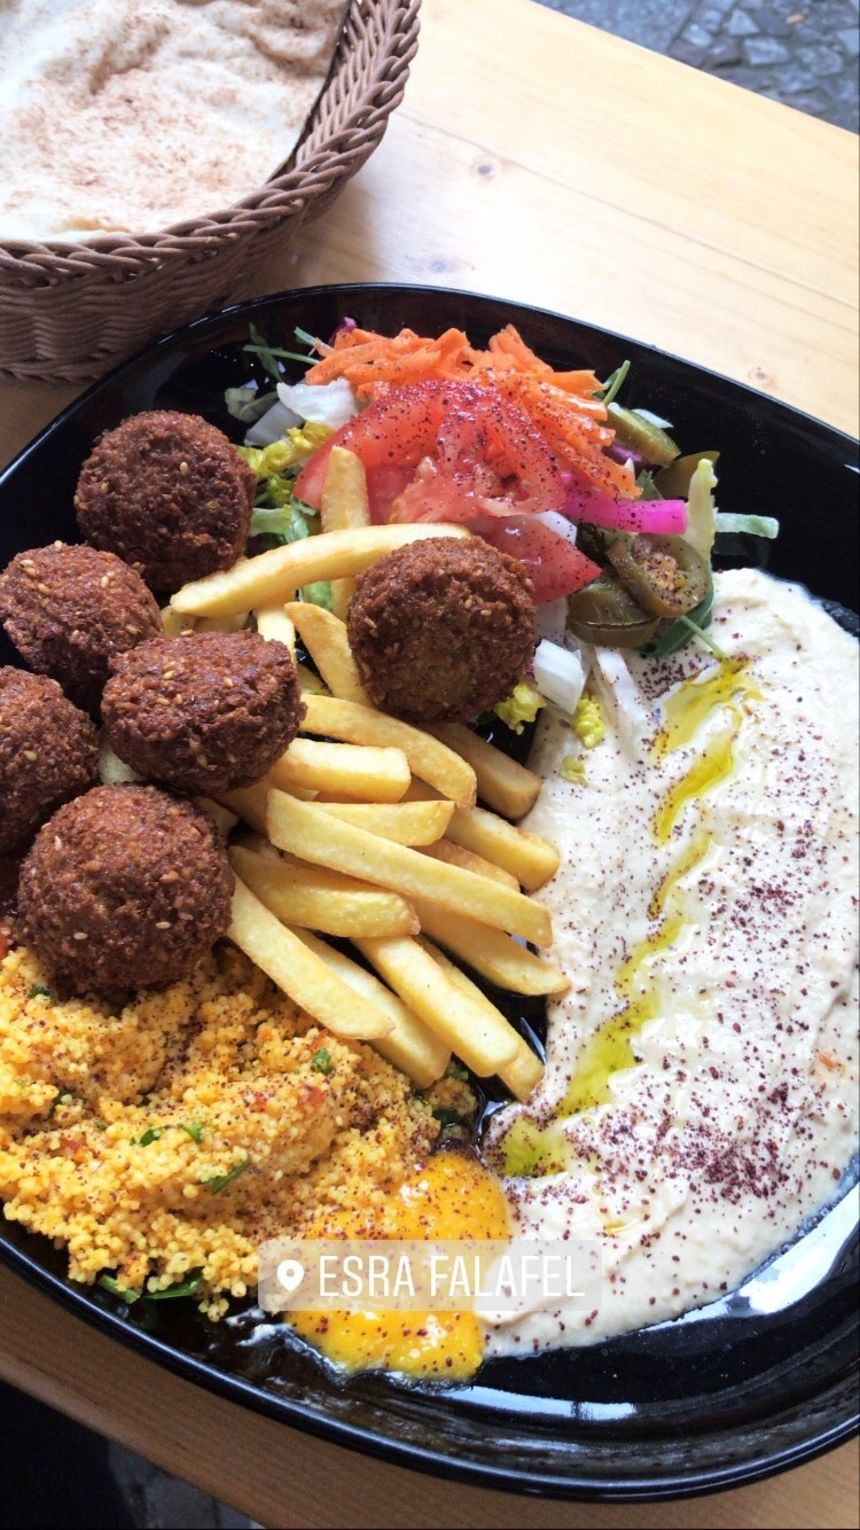 A photo of Vegan Falafel